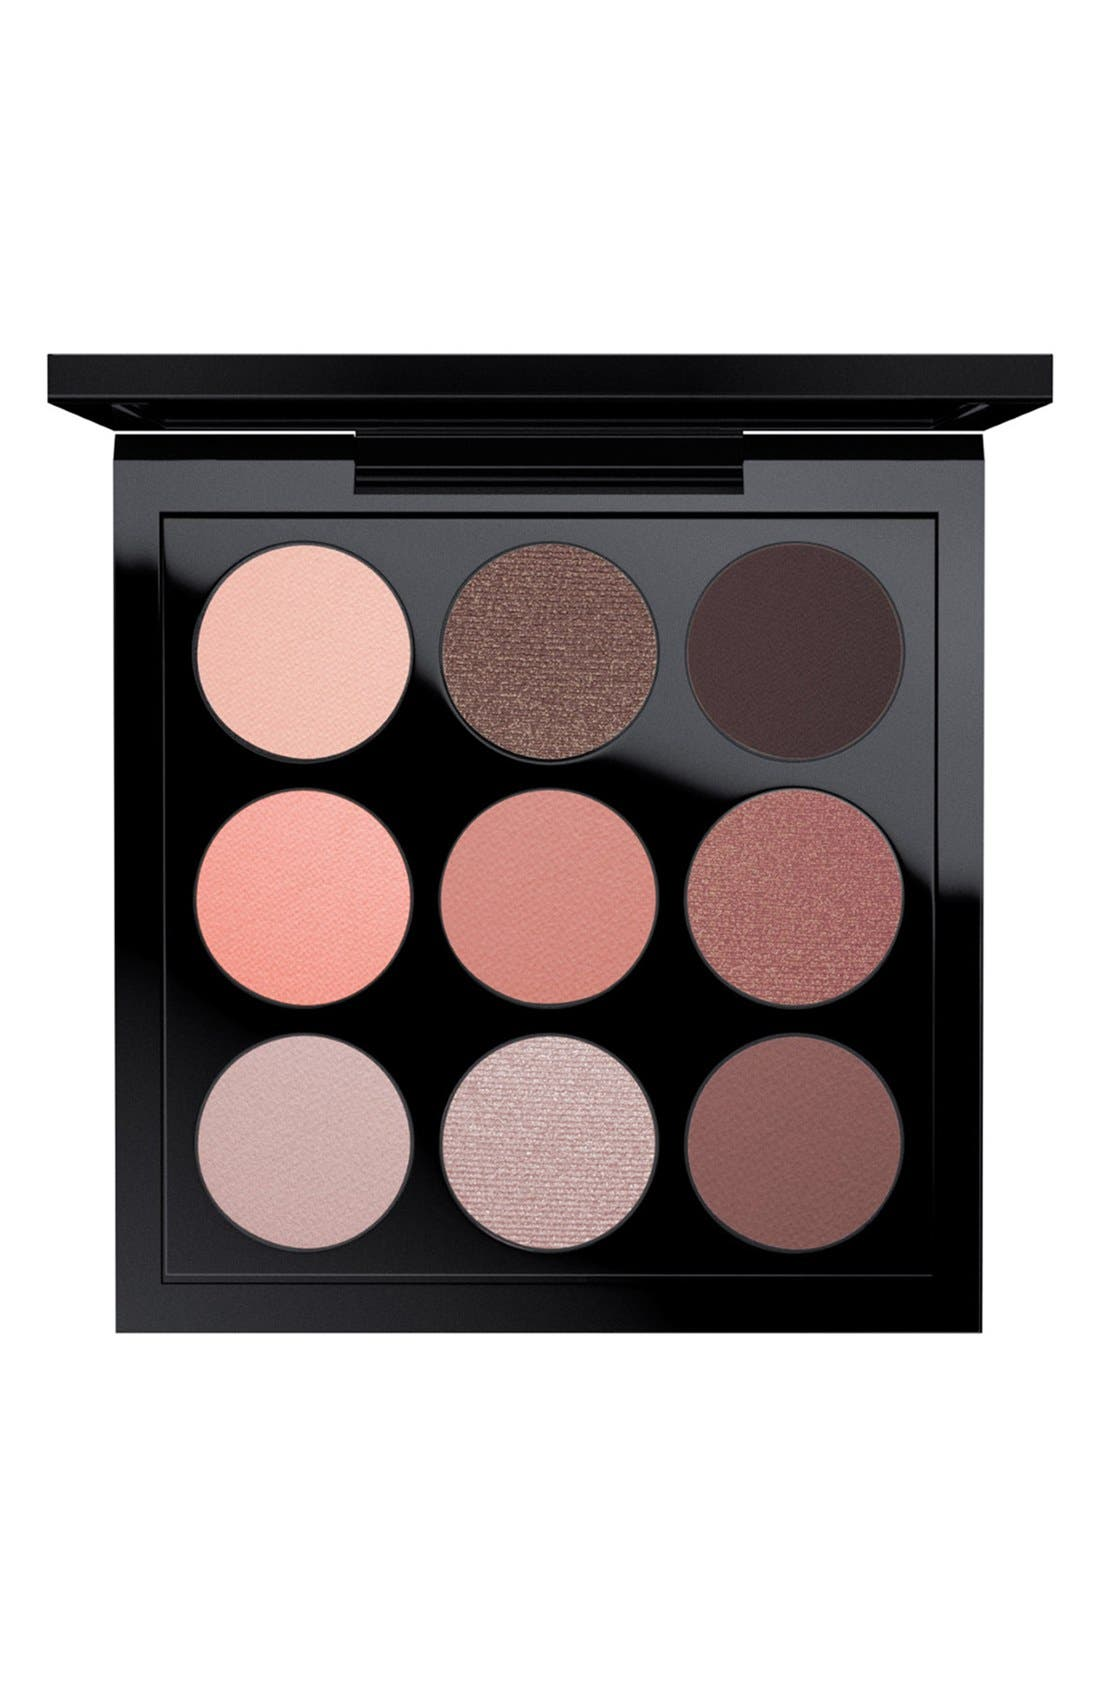 MAC 'Dusky Rose Times Nine' Eyeshadow Palette